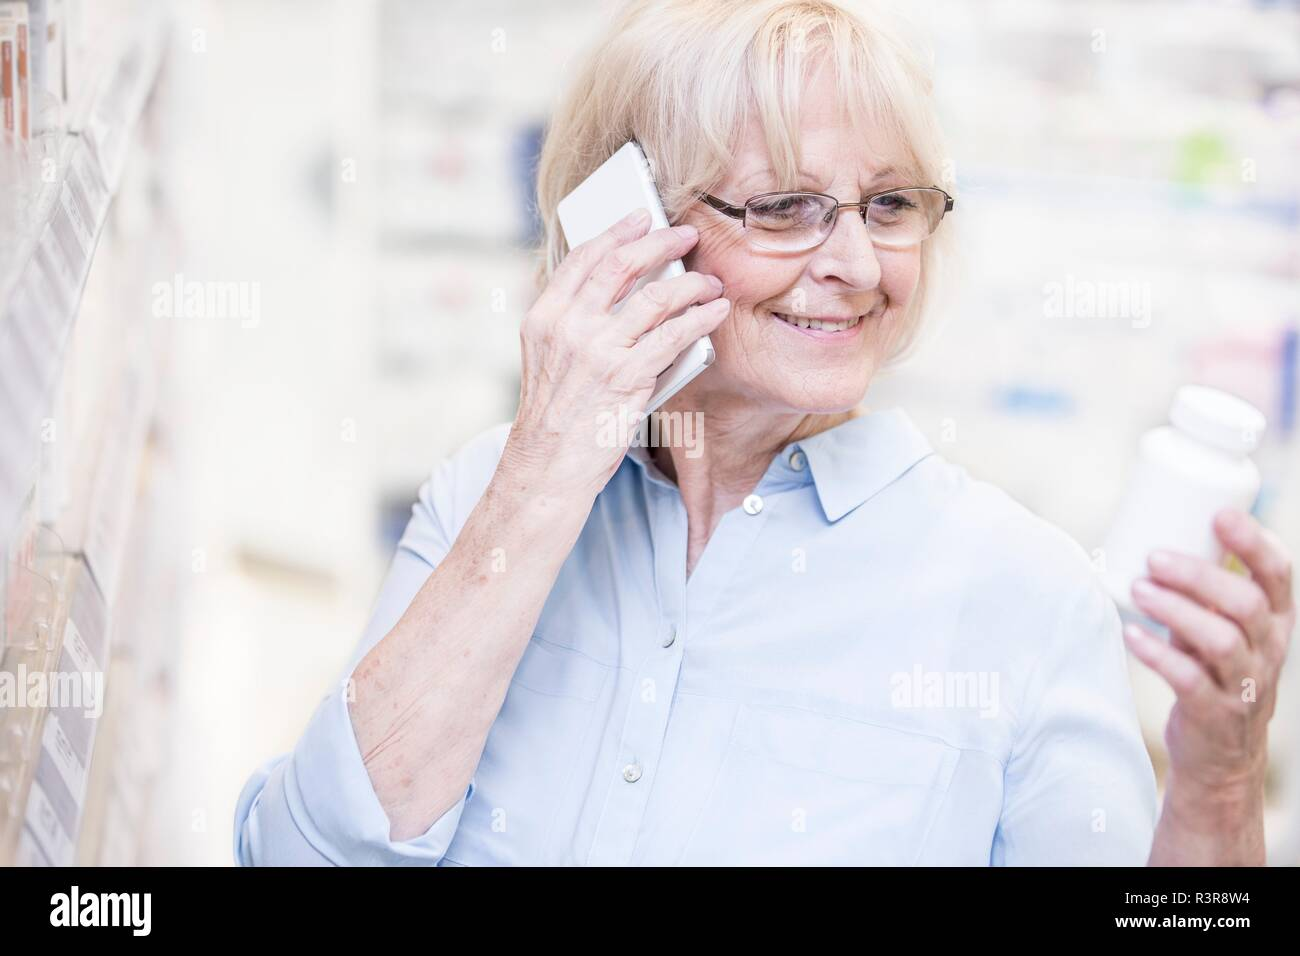 Senior woman discussing medicine on mobile phone in pharmacy. - Stock Image